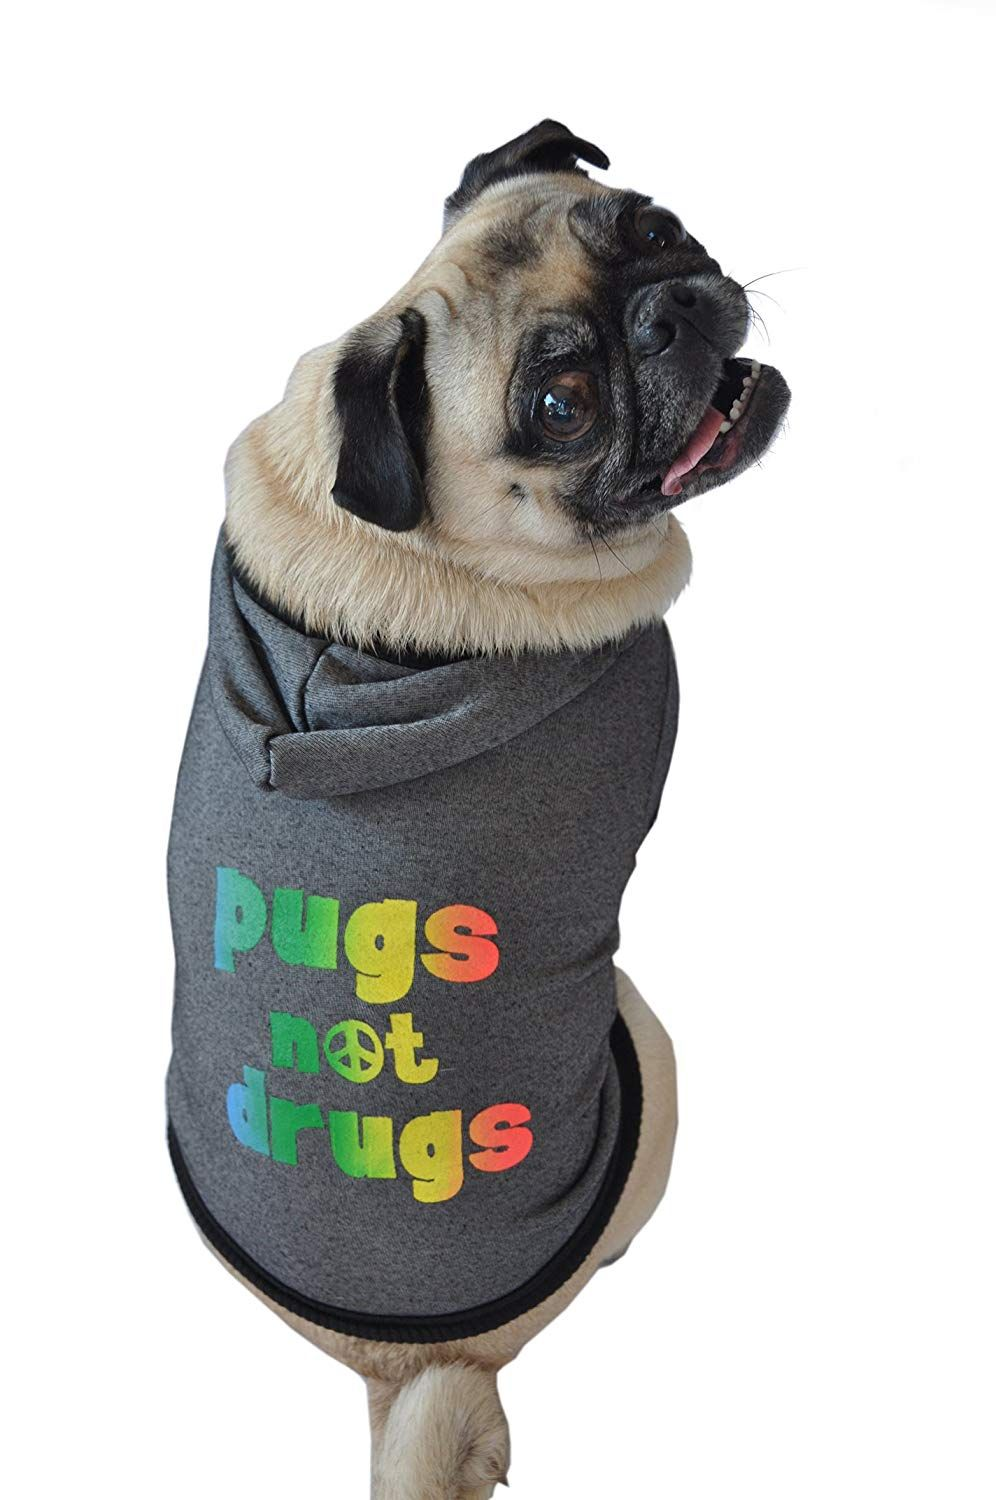 Pin on Dog Apparel and Accessories